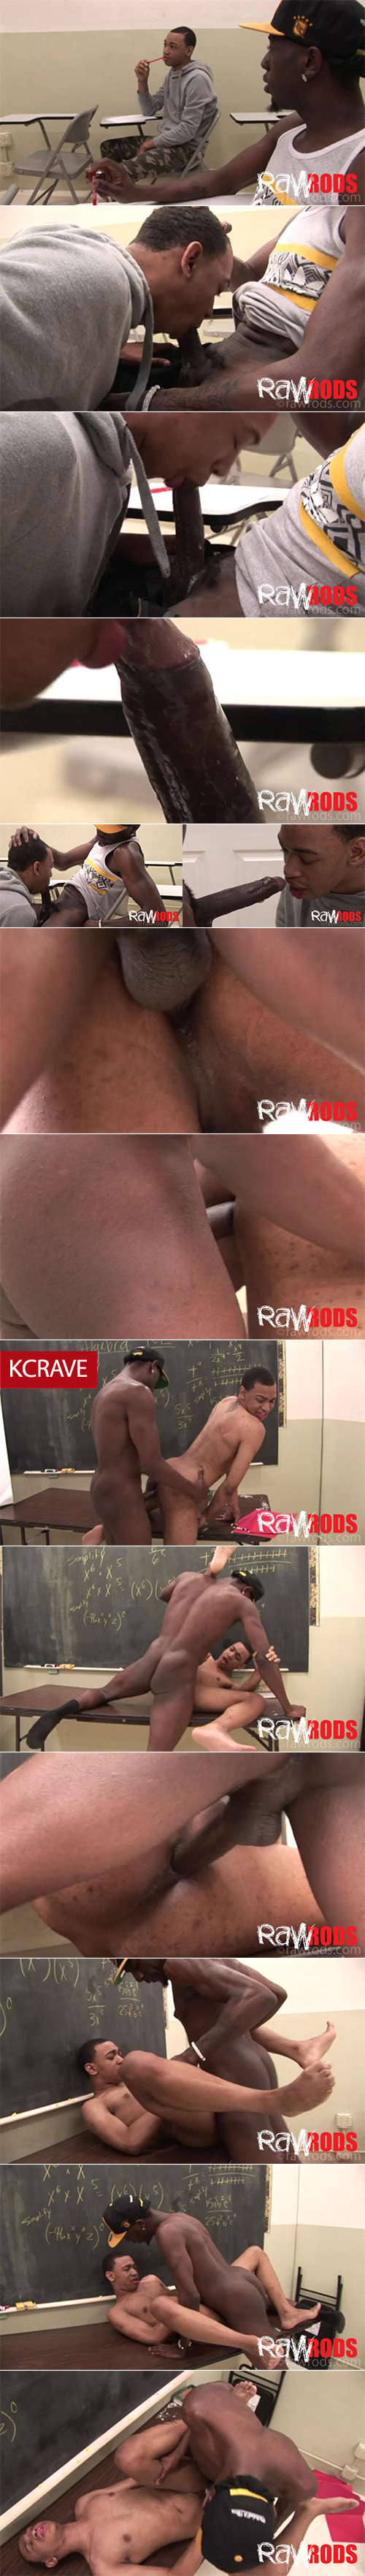 Dewayne King and Marco Ashton